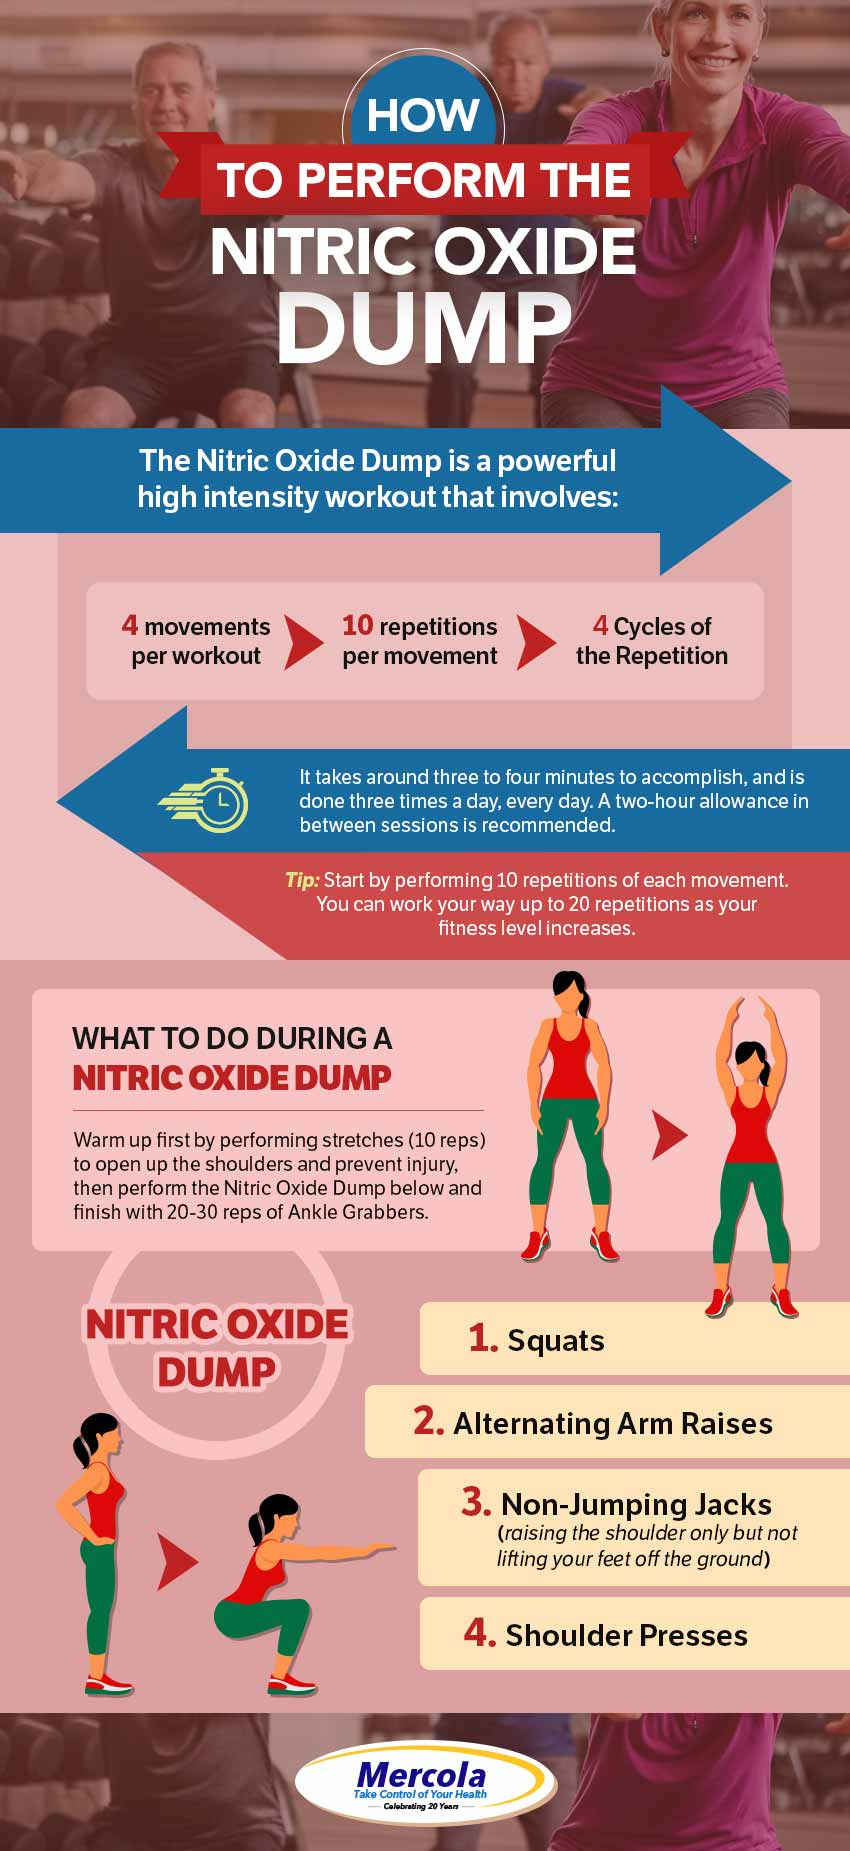 How to Perform the Nitric Oxide Dump